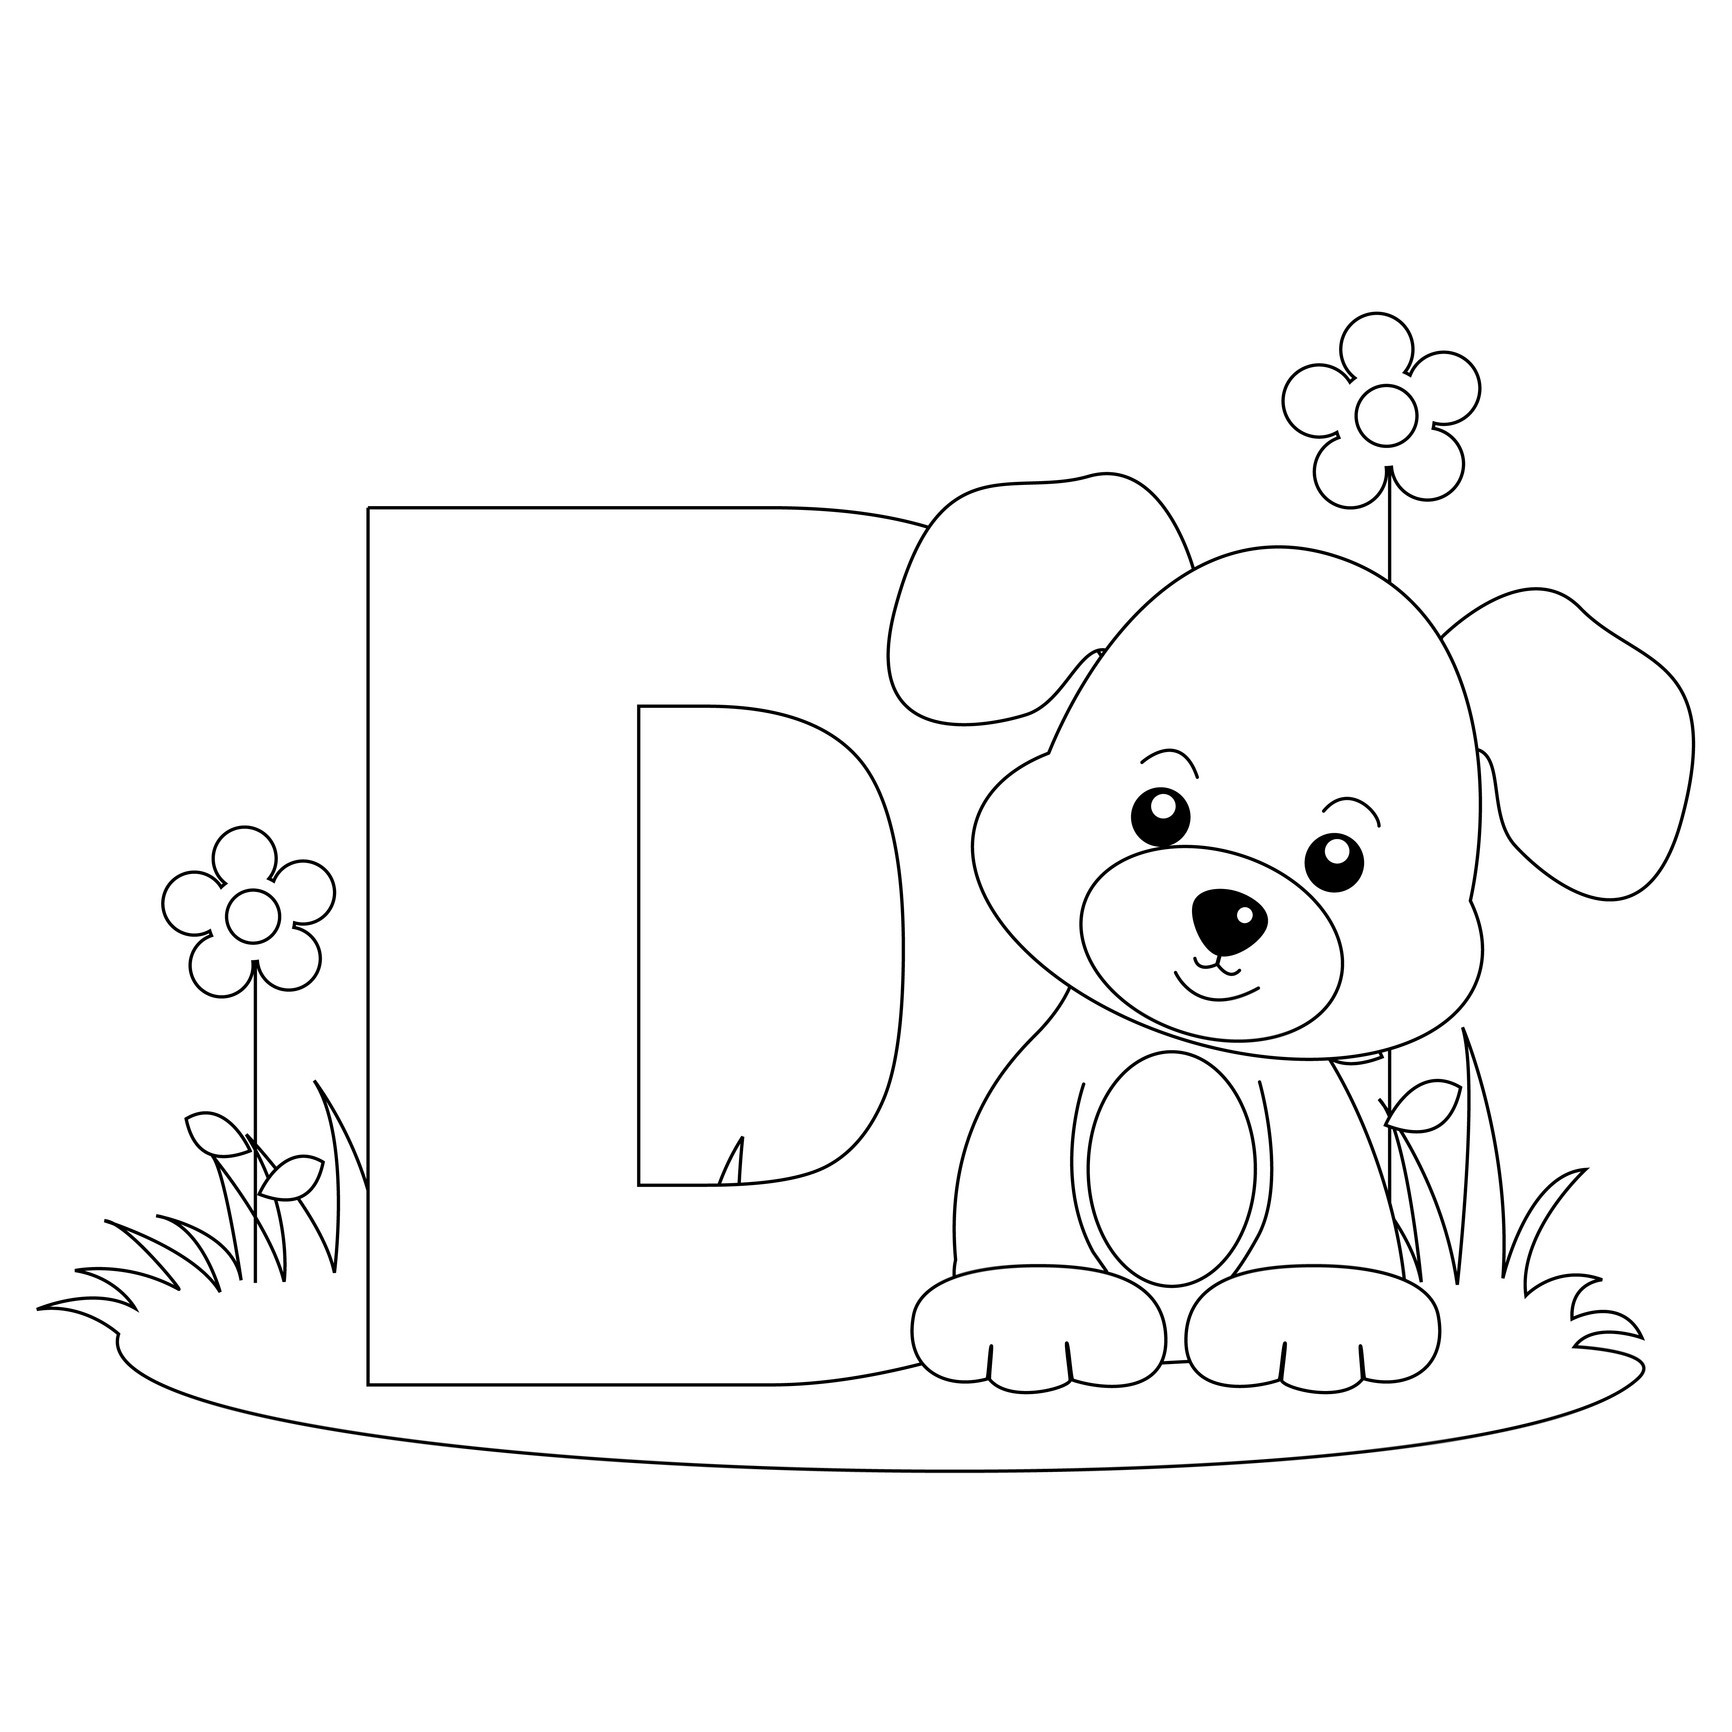 Coloring Pages Alphabet Printable : Free printable alphabet coloring pages for kids best